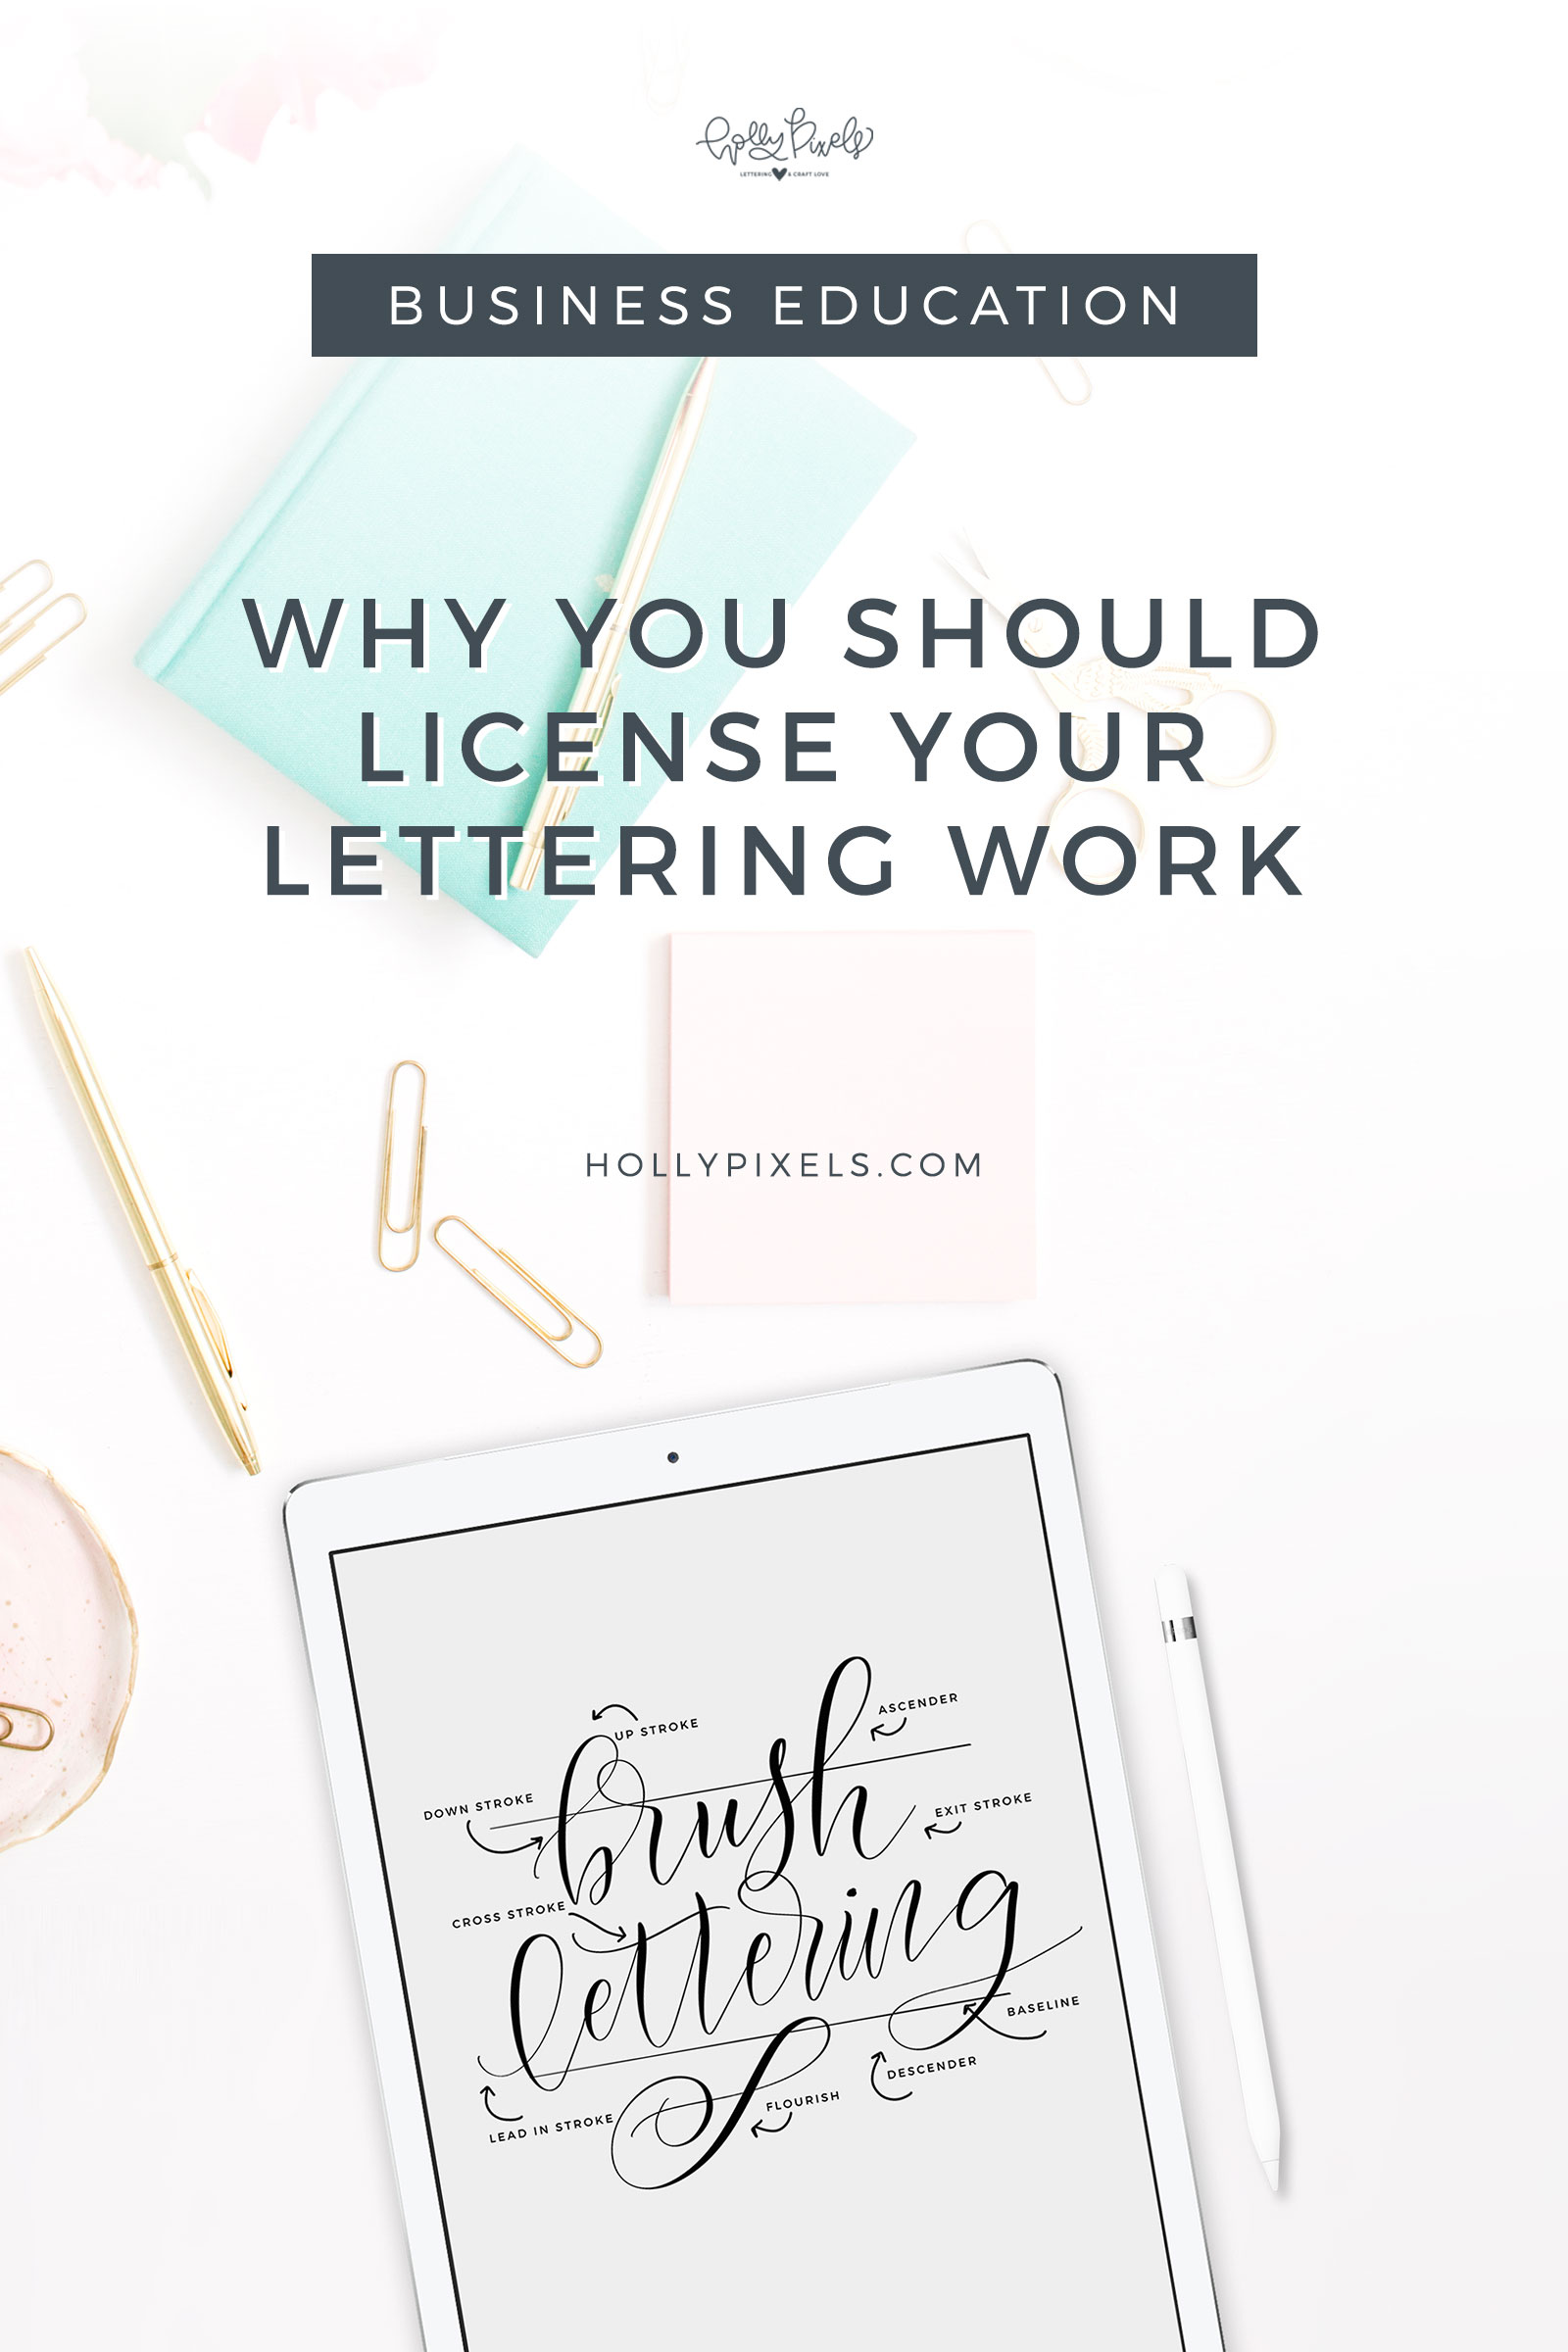 I wanted to write an article about licensing options for lettering artists like myself. I wanted to educate new artists and more seasoned artists, but also the consumer.